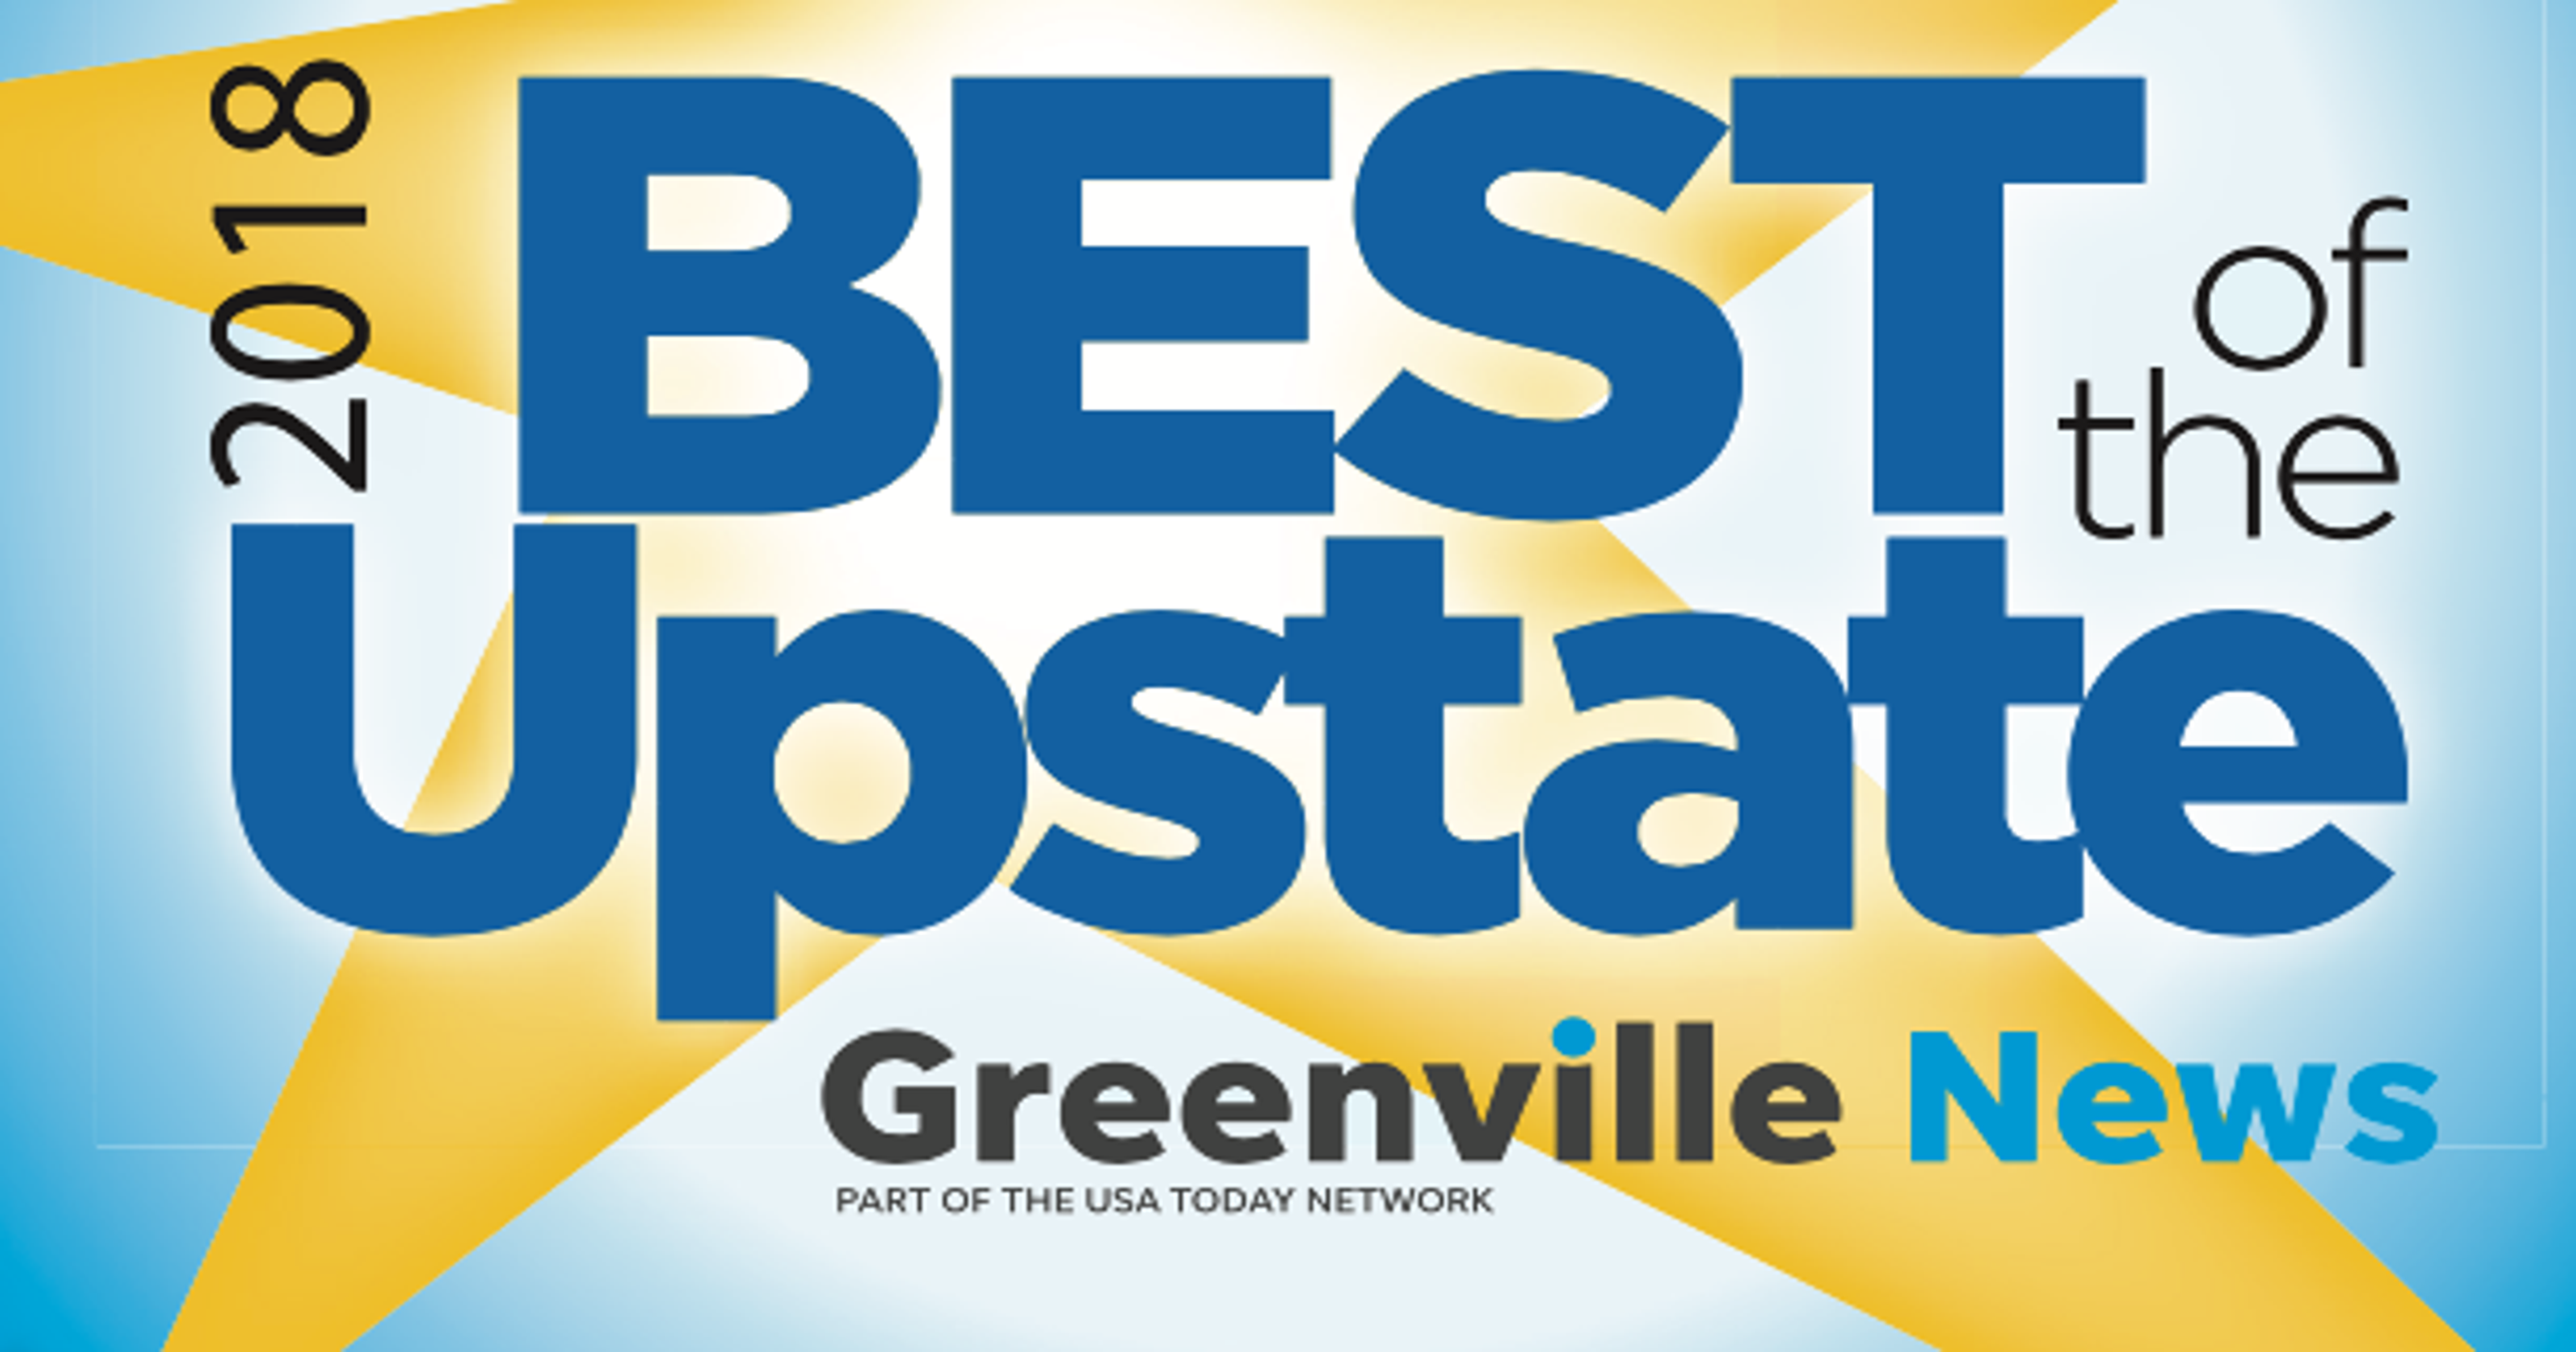 Full list of the 2018 Best of the Upstate winners